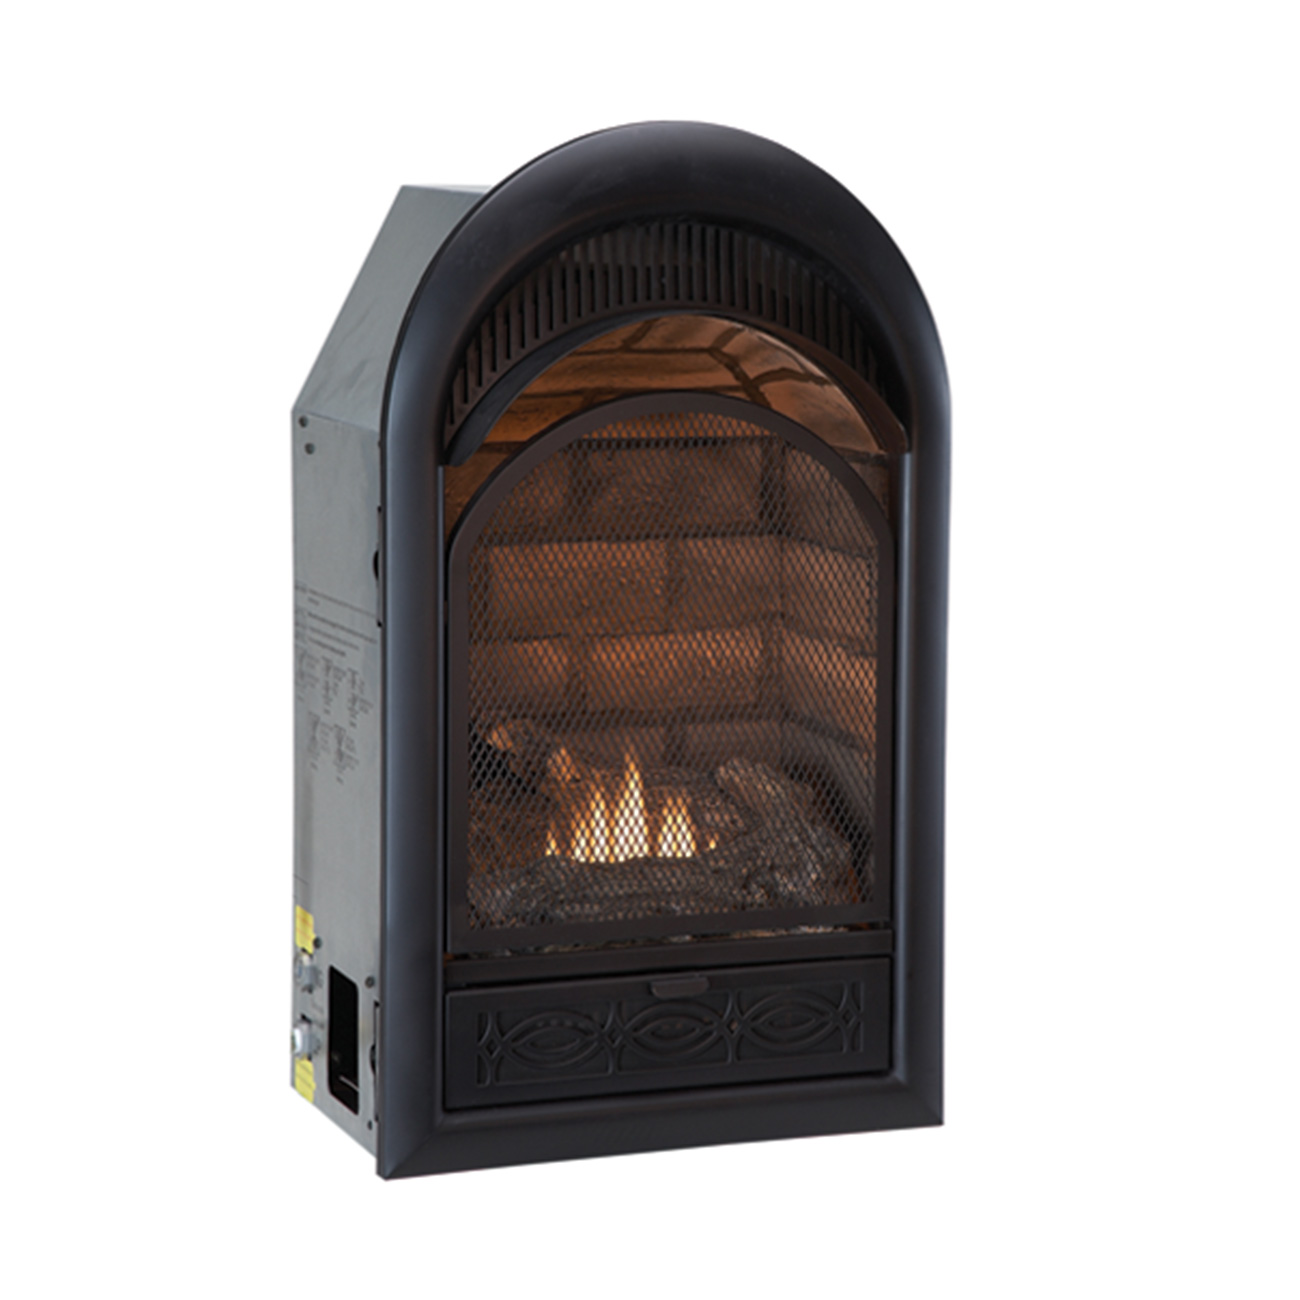 Btu Gas Fireplace Ventless Dual Fuel Fireplace Insert 10 000 Btu